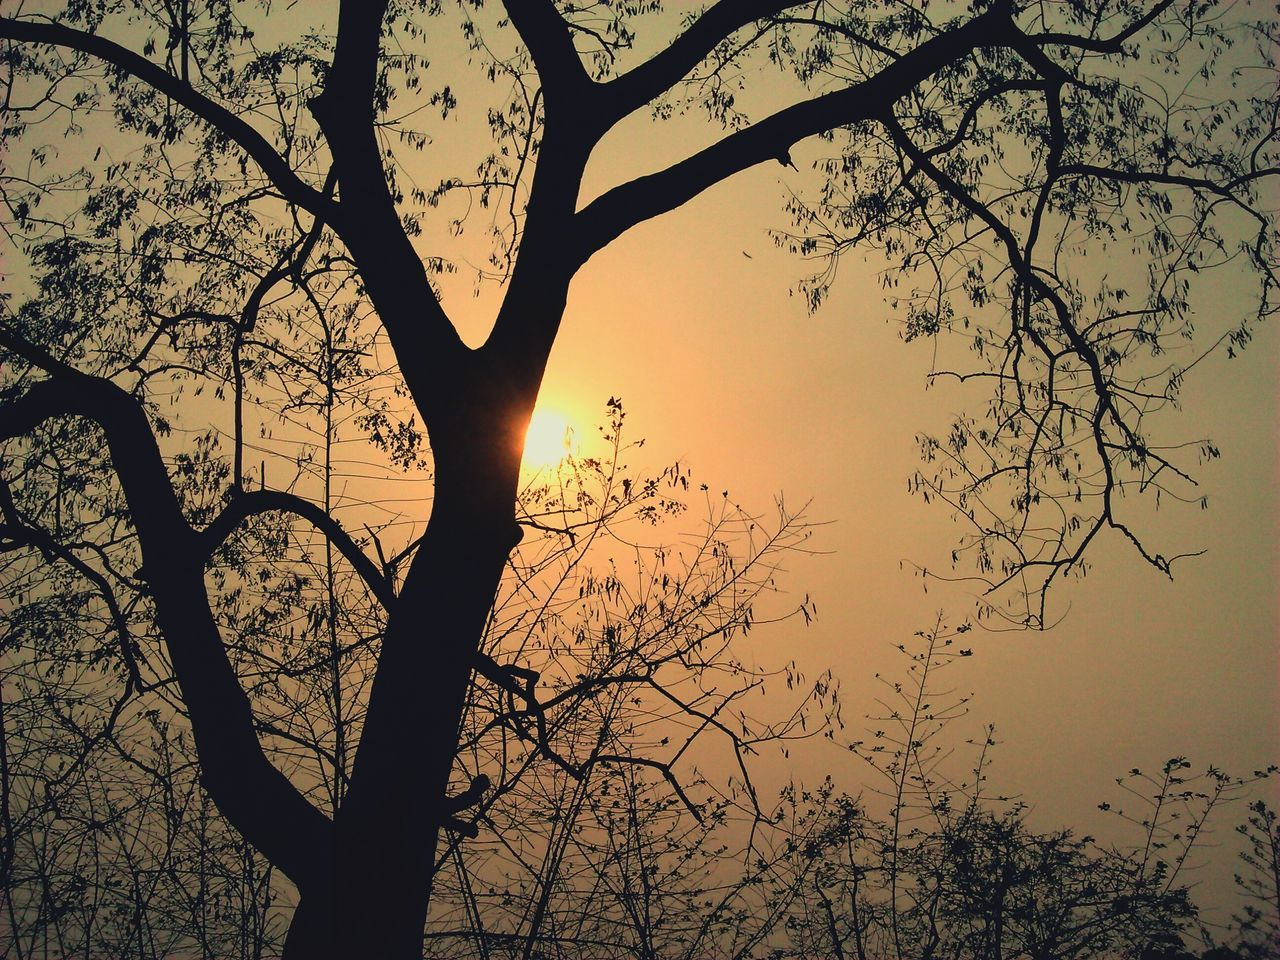 tree, branch, nature, silhouette, beauty in nature, bare tree, sunset, tranquility, tranquil scene, scenics, low angle view, sky, no people, outdoors, growth, day